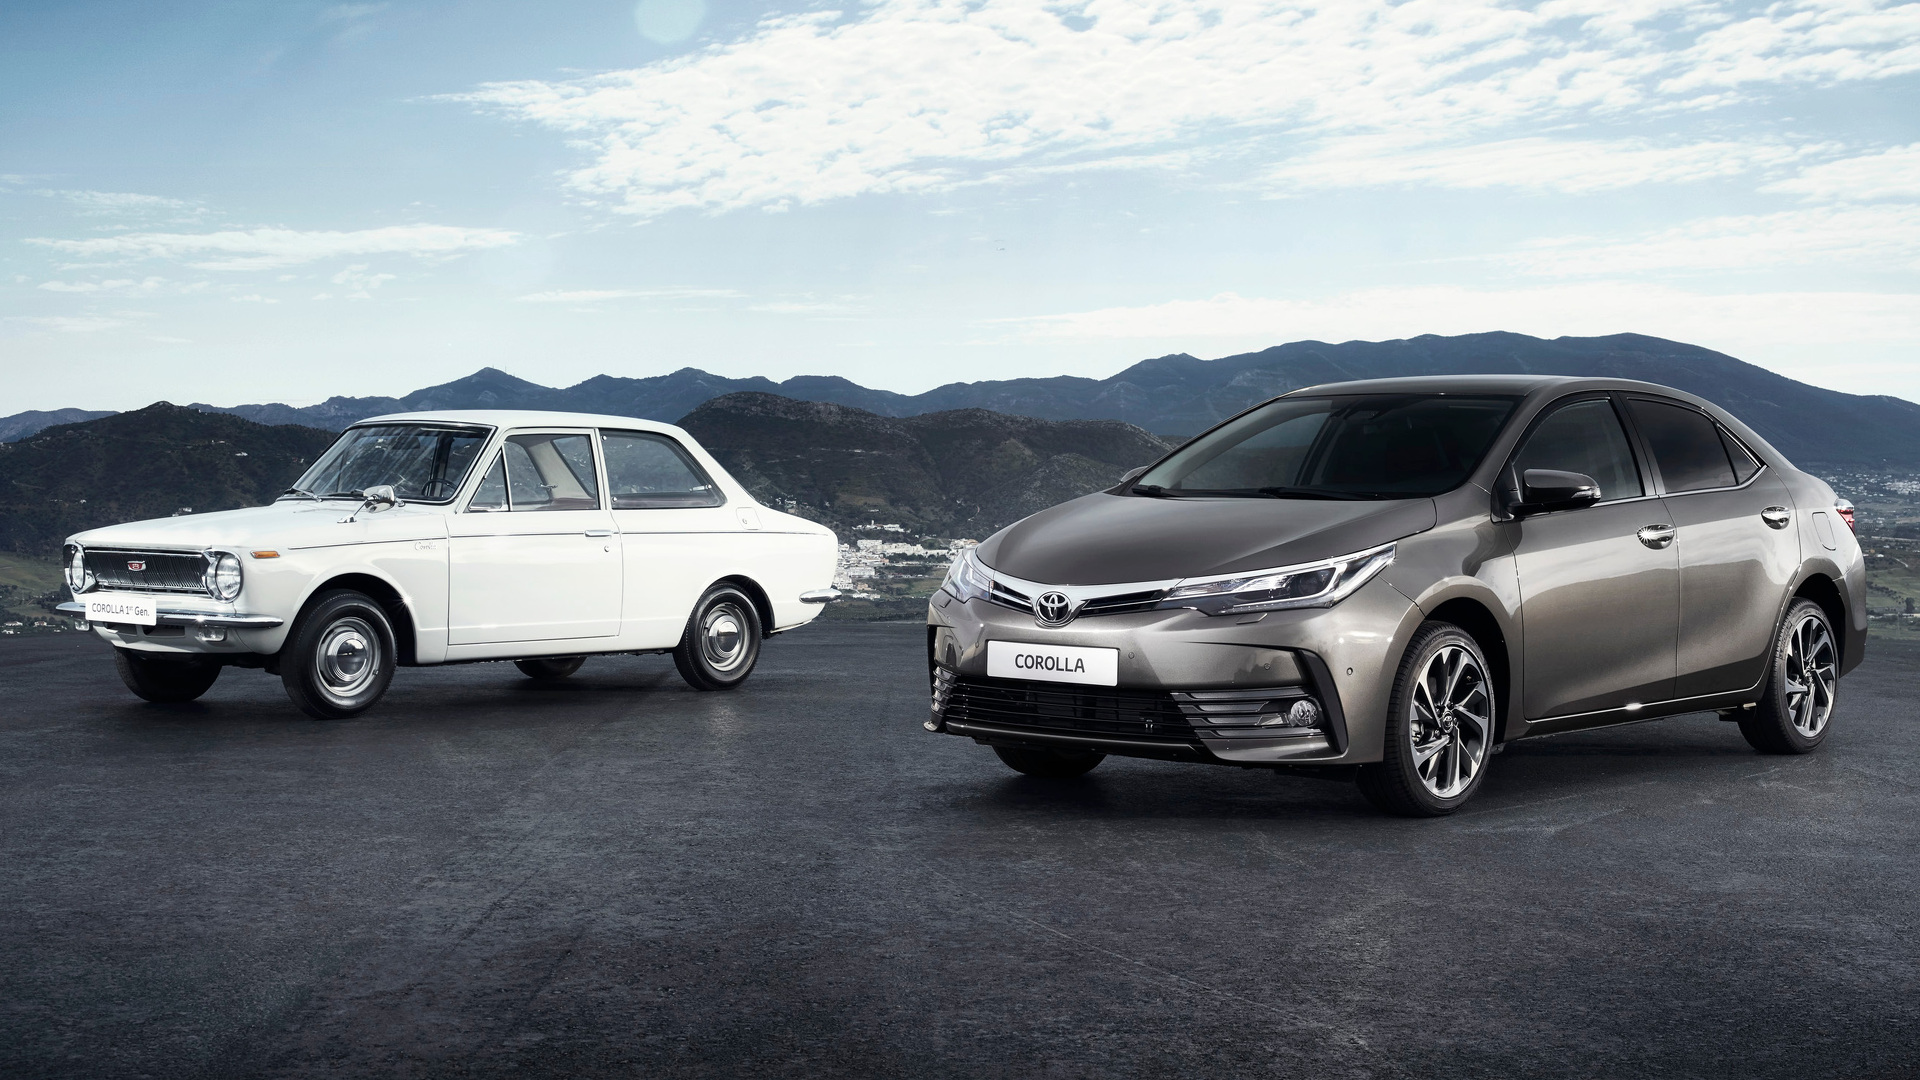 Corolla is the world\'s best selling car after 50 years